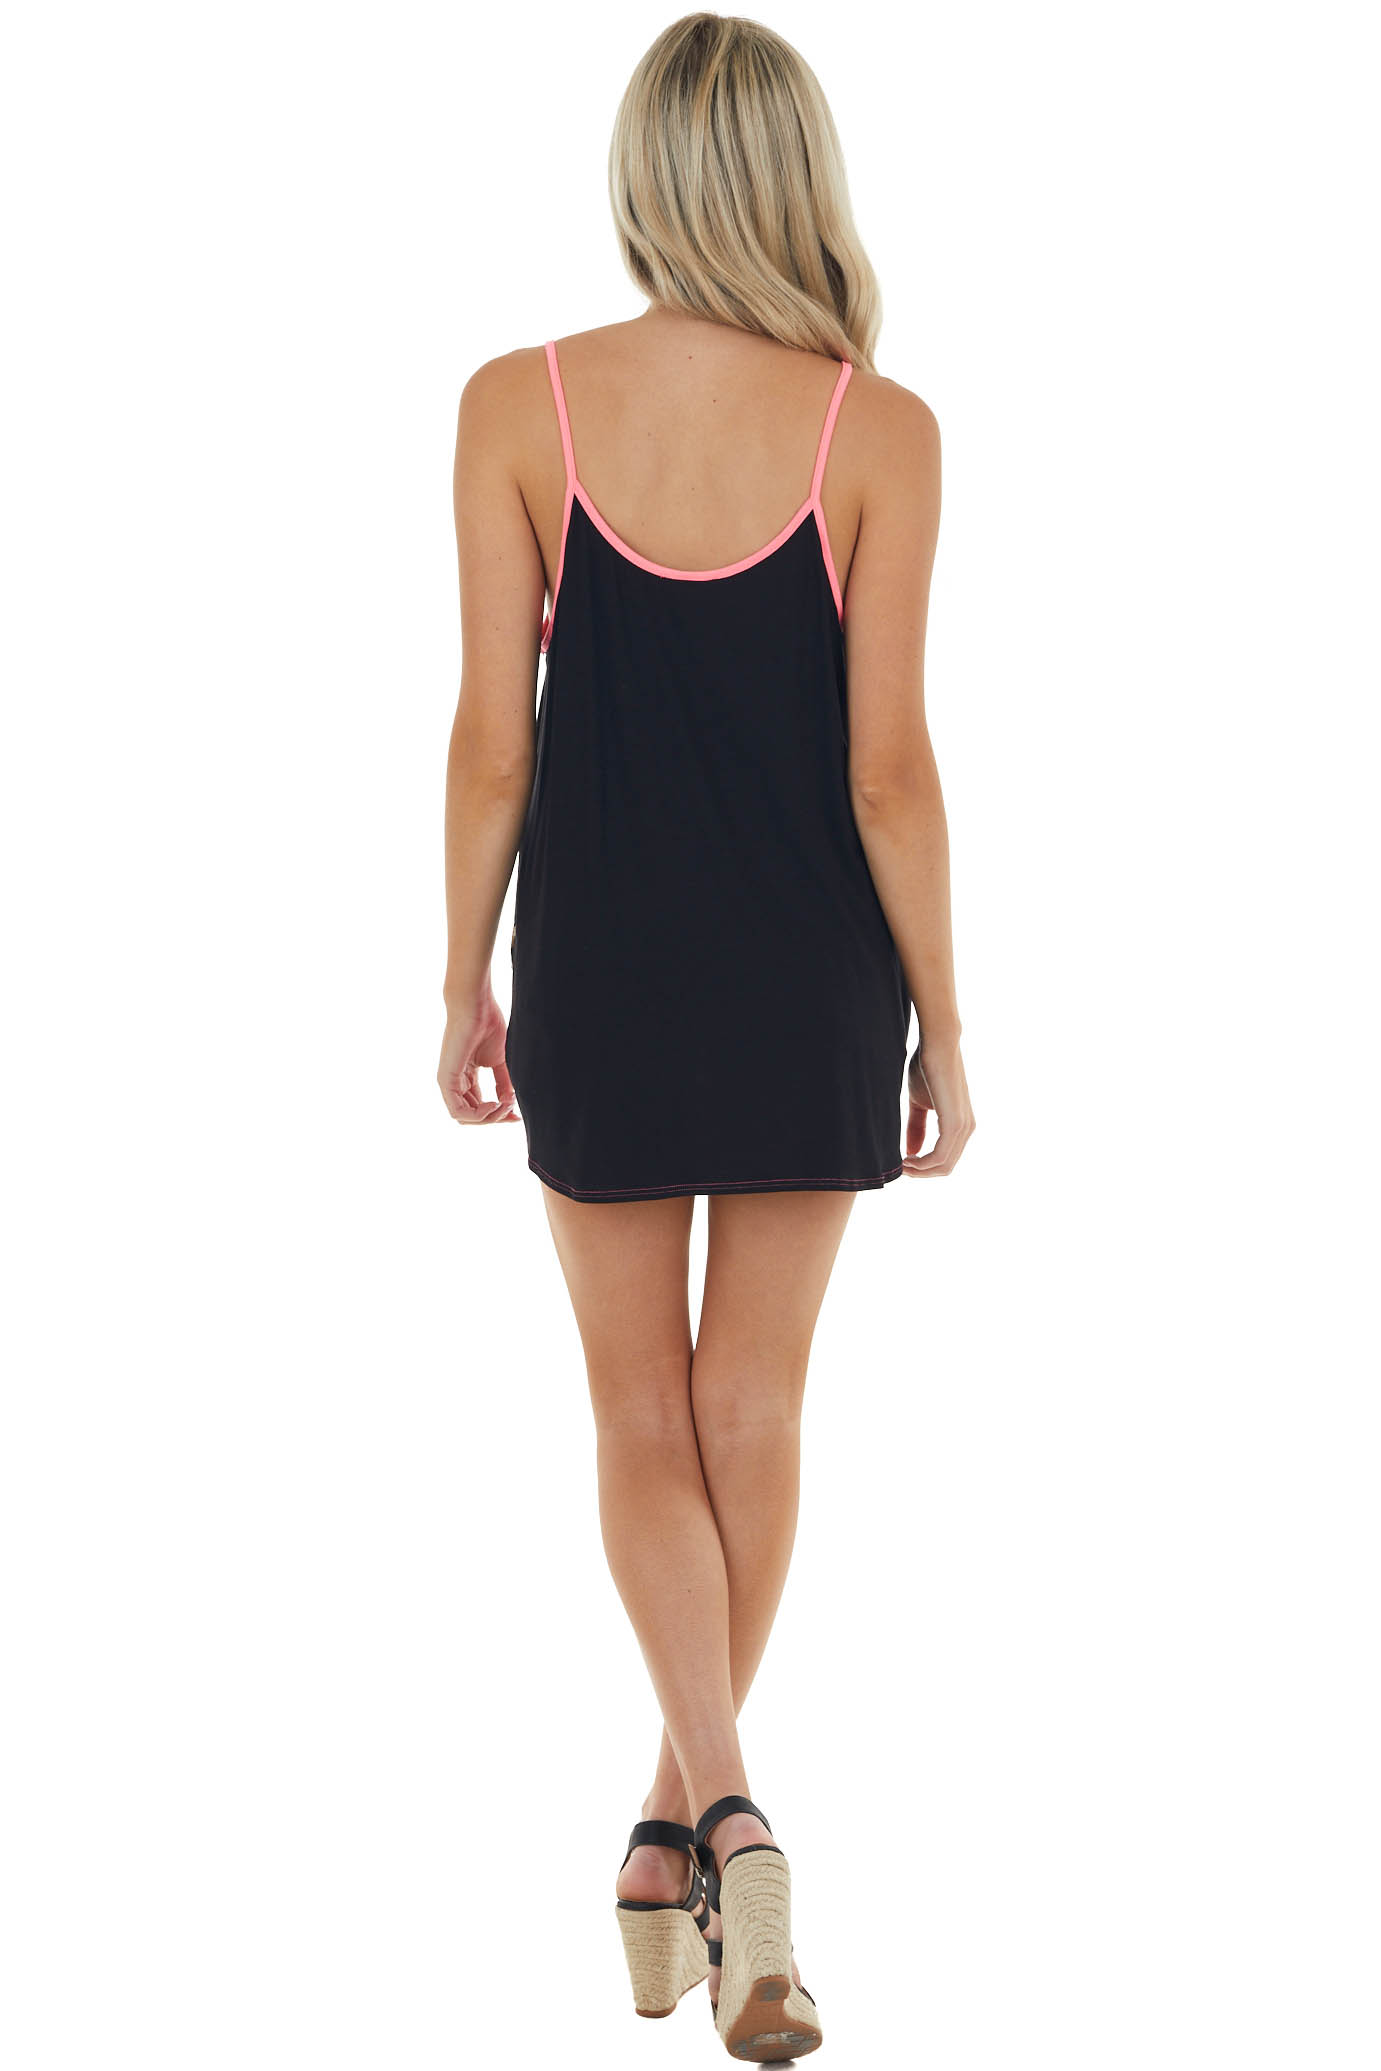 Black Colorblock Sleeveless Top with Caged Neckline